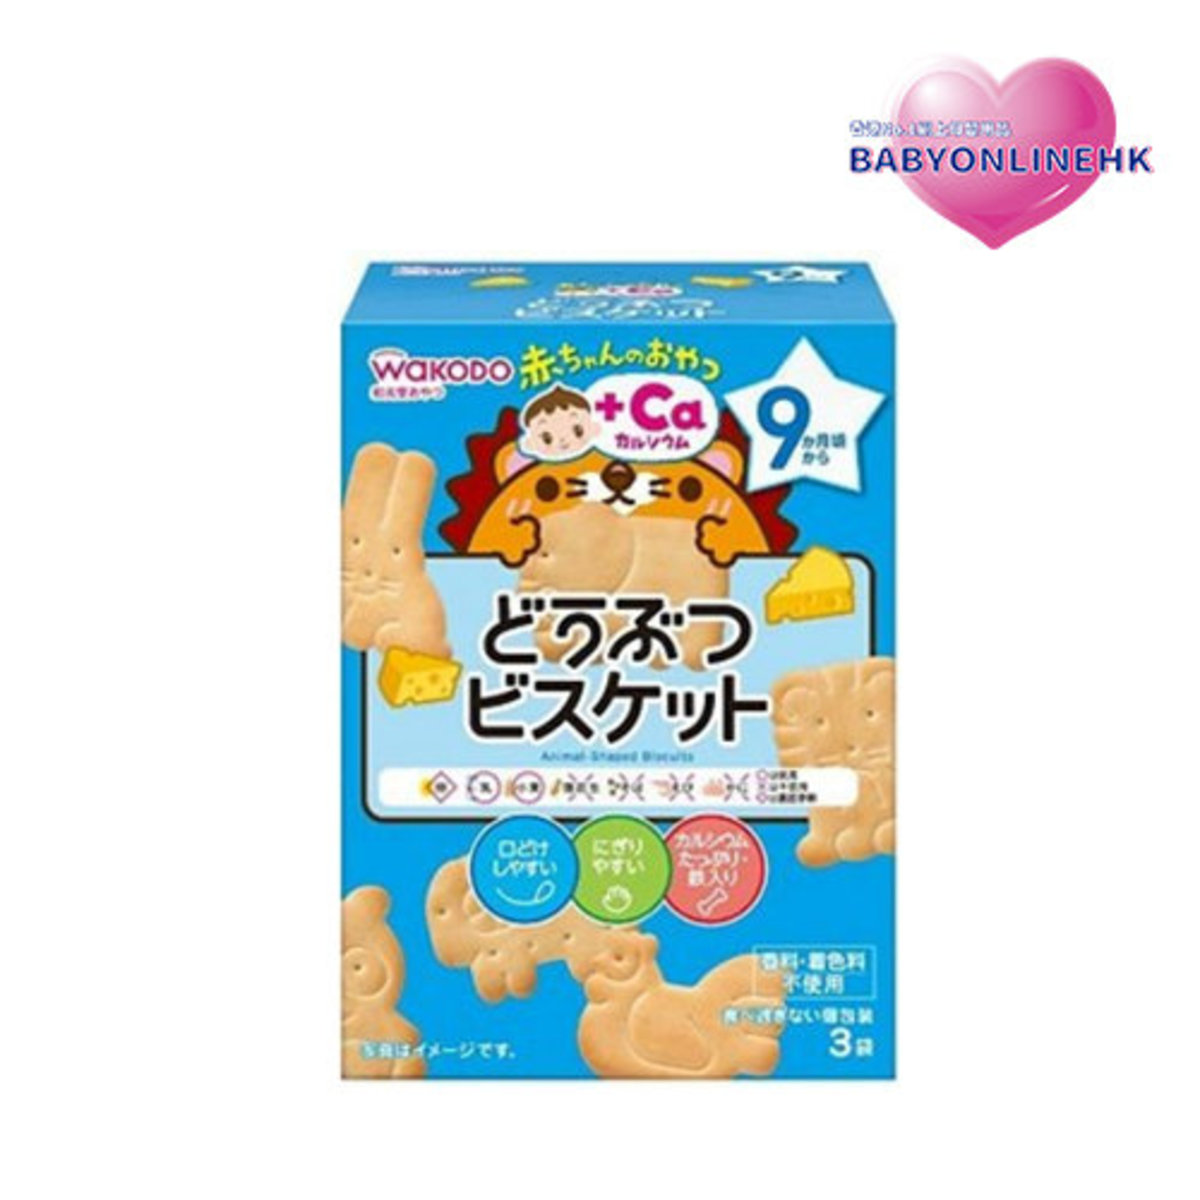 9 month old cheese Calcium animal shape biscuit (Parallel Import Product)